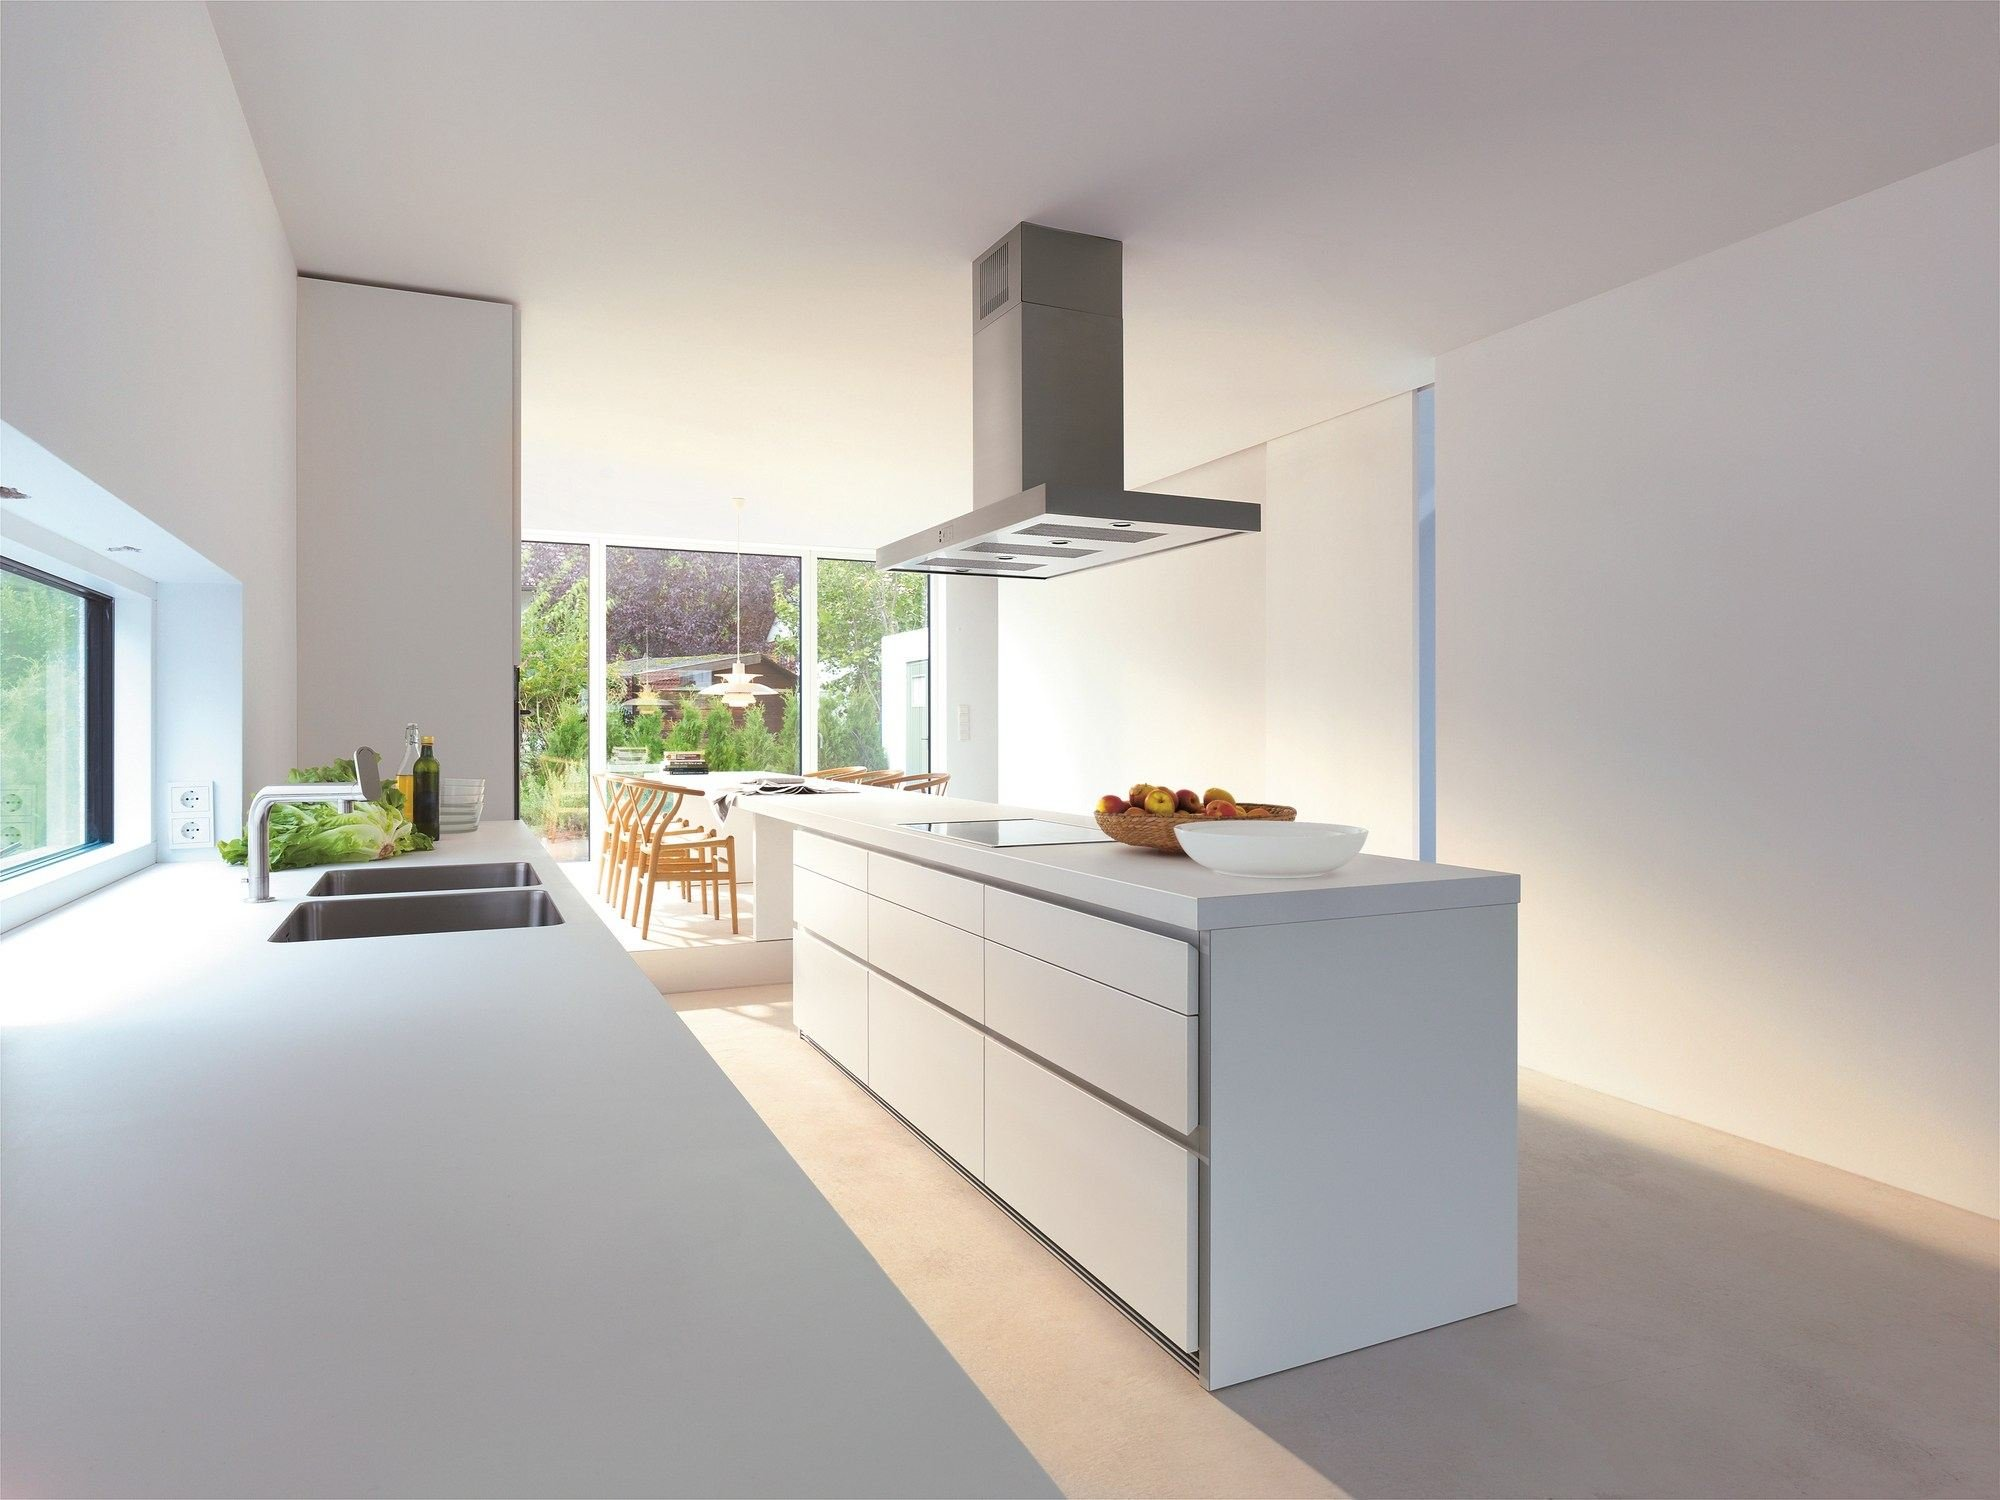 B1 Kitchen with island by Bulthaup # Wasbak Eiland_075314